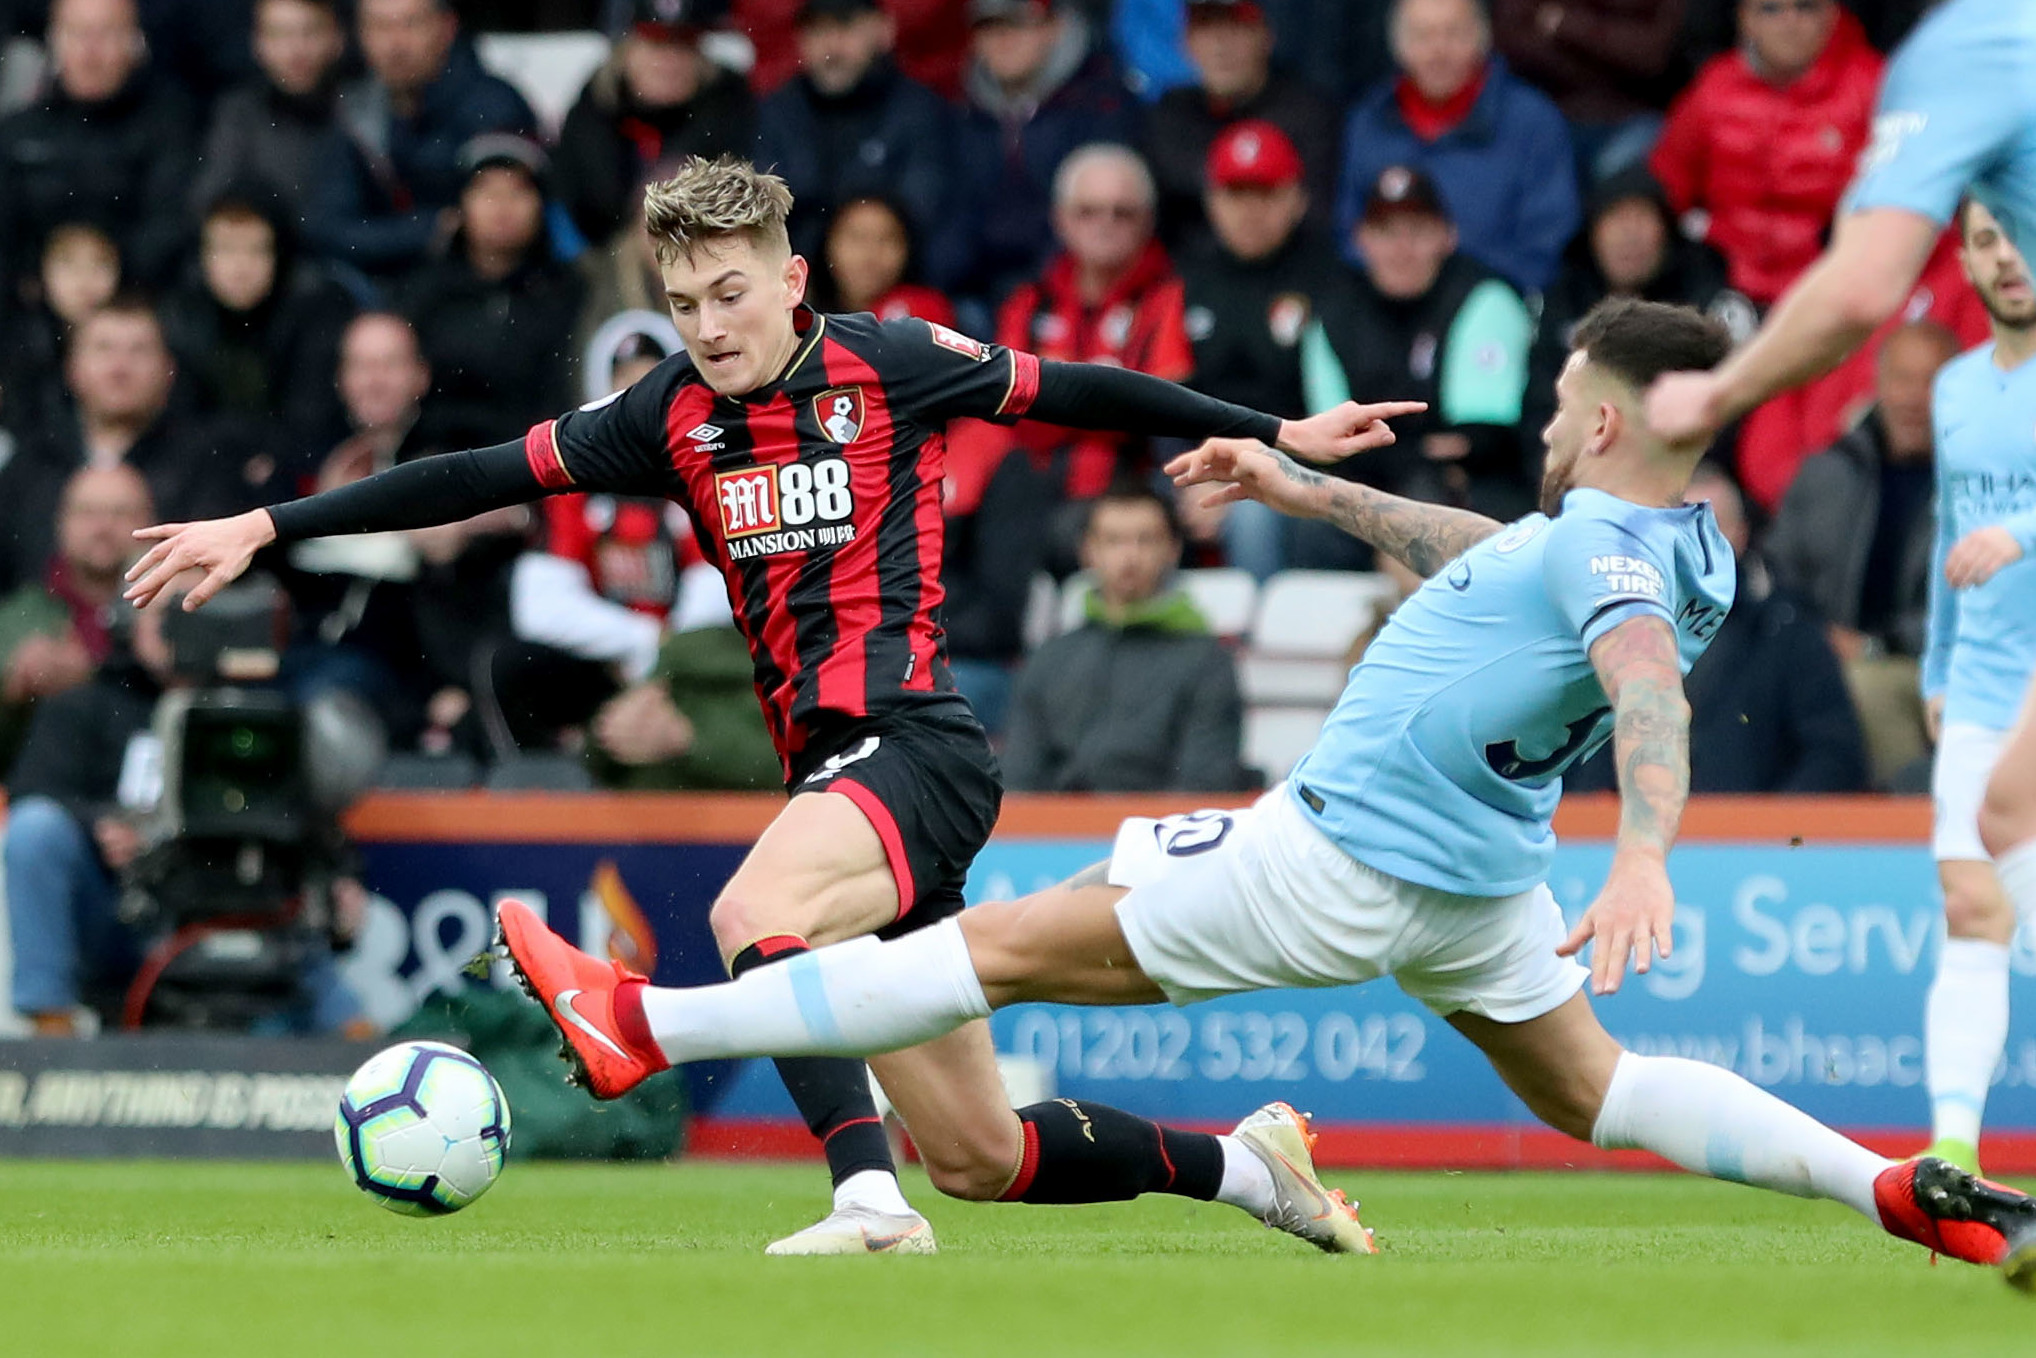 Brooks has attitude to cope with Premier League's tough-tackling defenders, says Howe